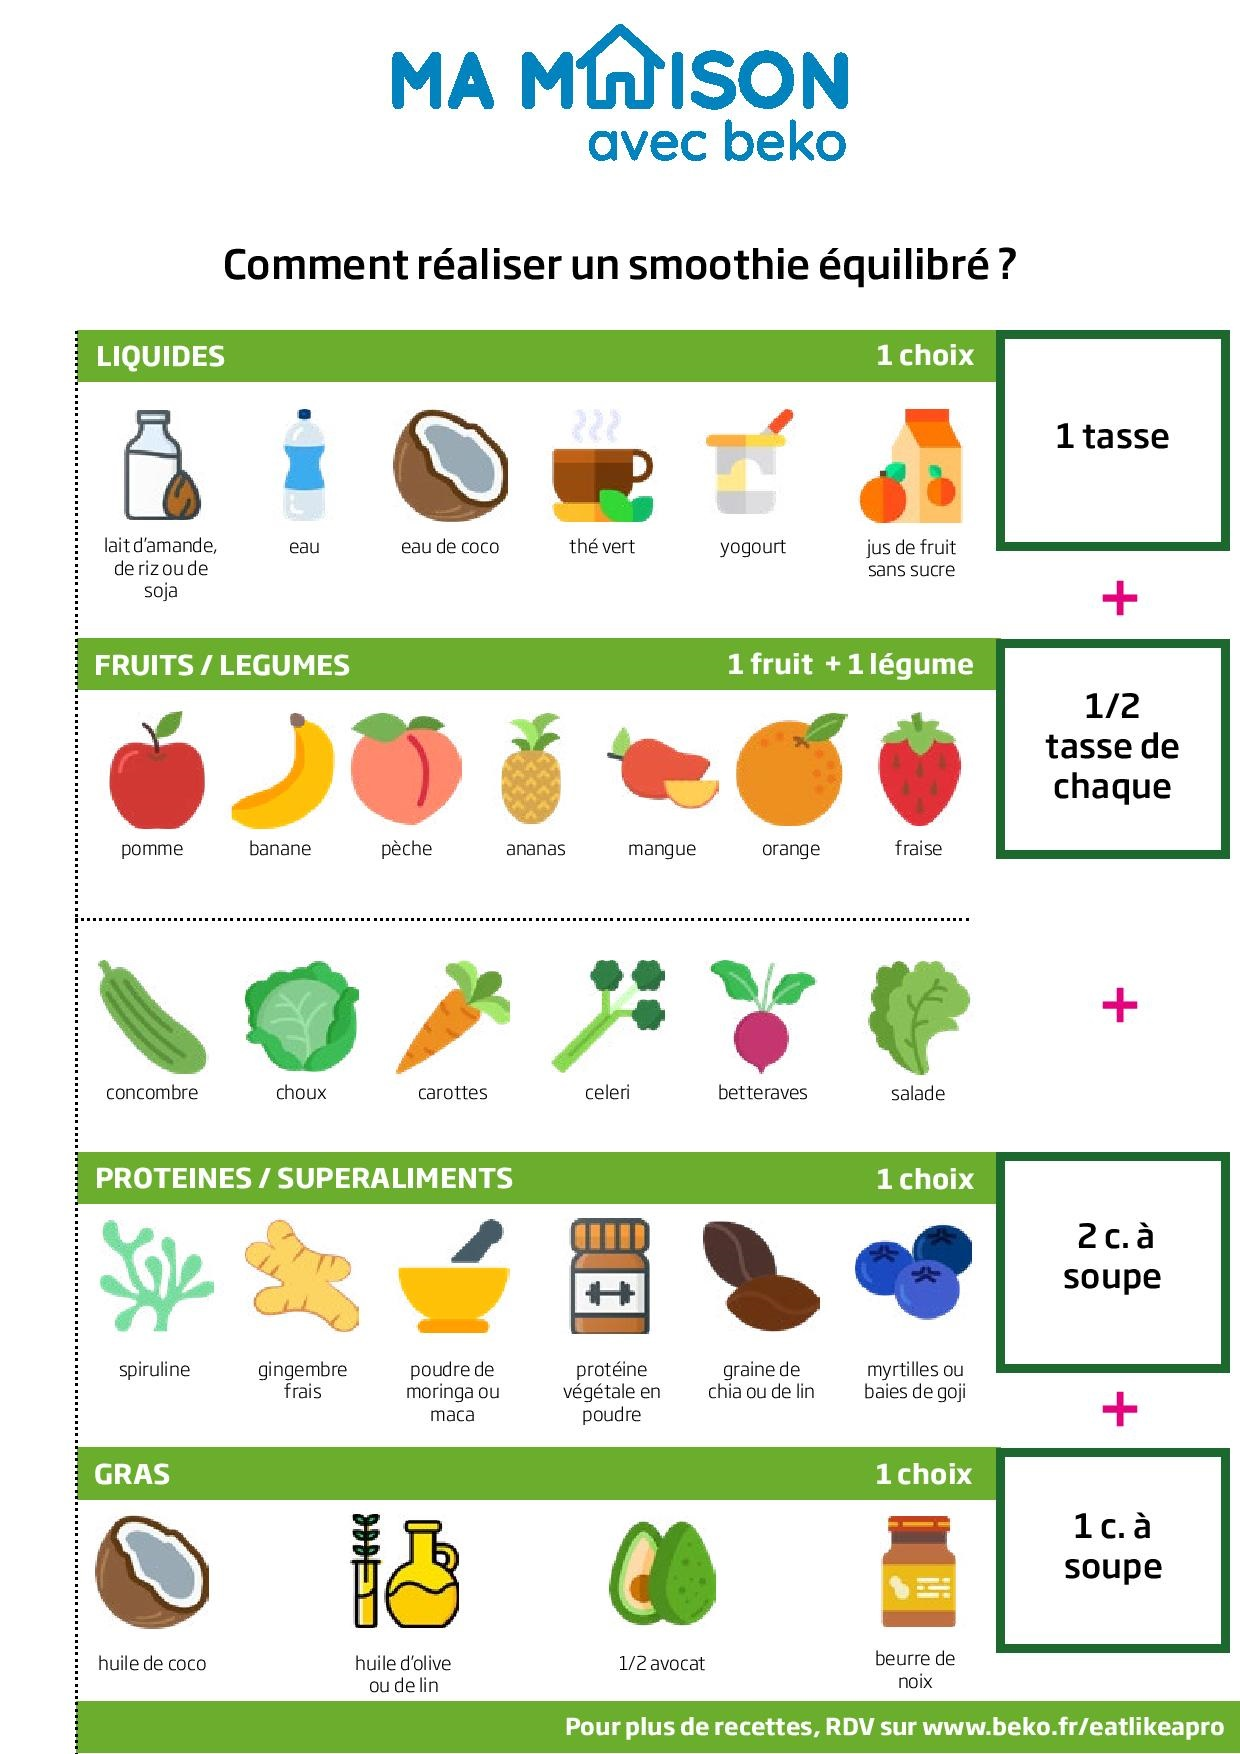 ingredients de base et proportions pour faire un bon smoothie